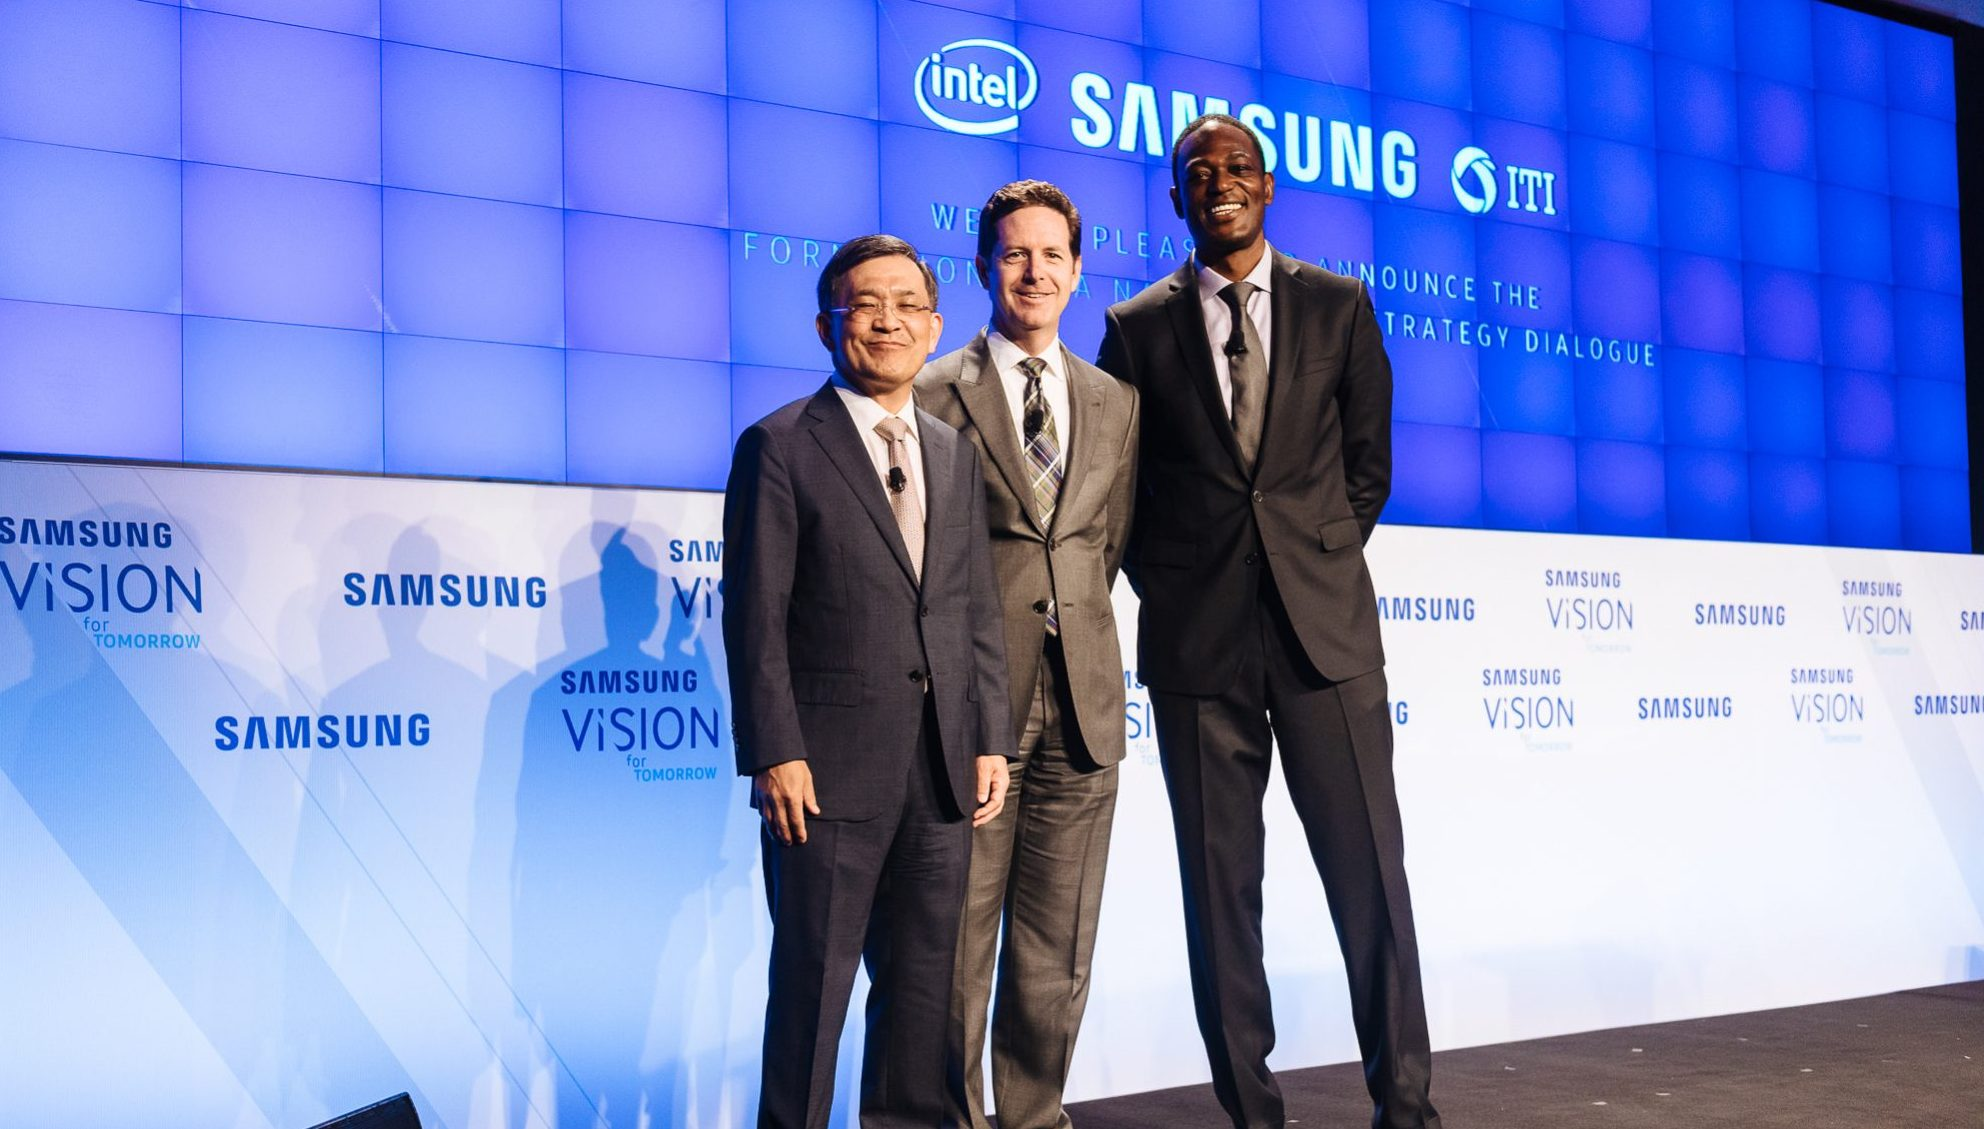 Samsung and Intel Launch Tech Initiative to Develop Recommendations